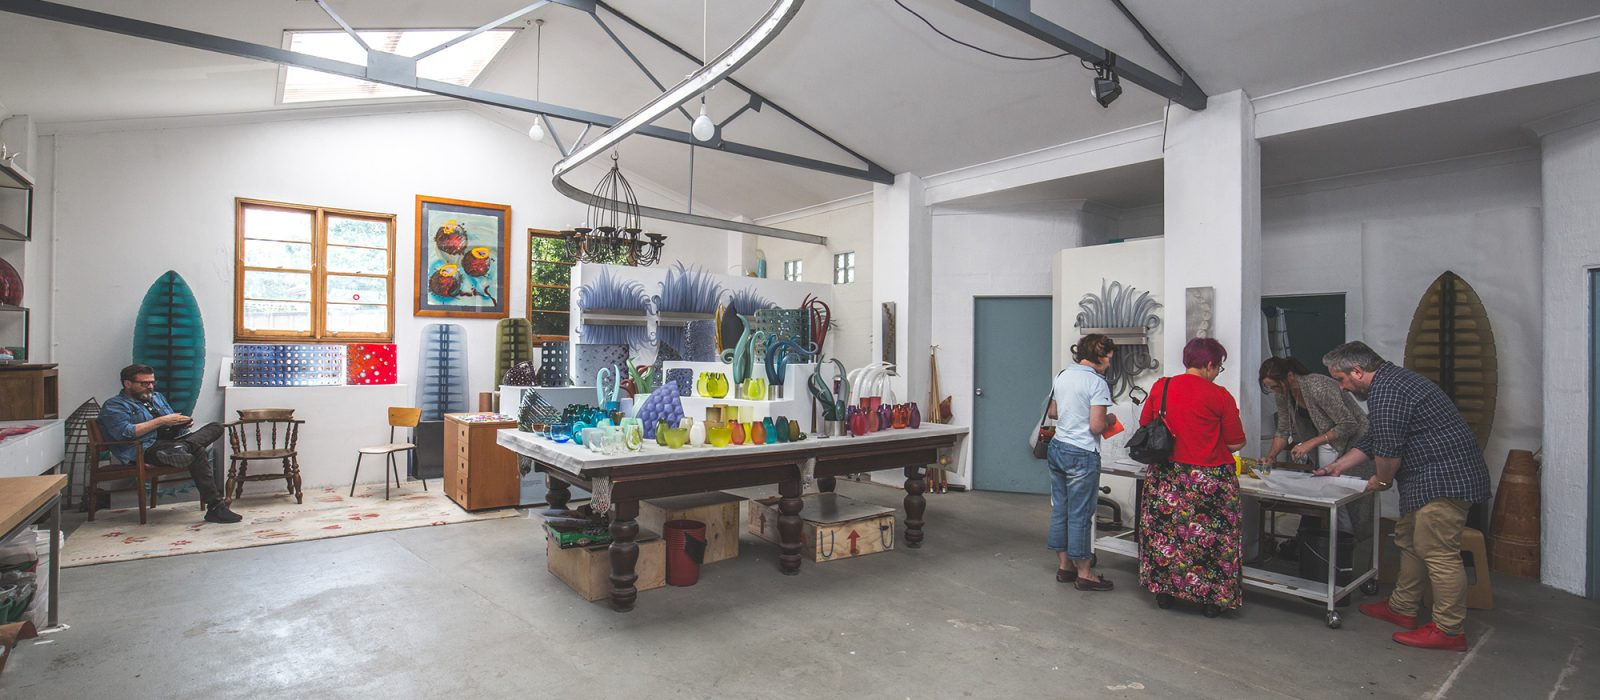 Harriet Schwarzrock and Matthew Curtis Studio Space. Photo: 5 Foot Photography